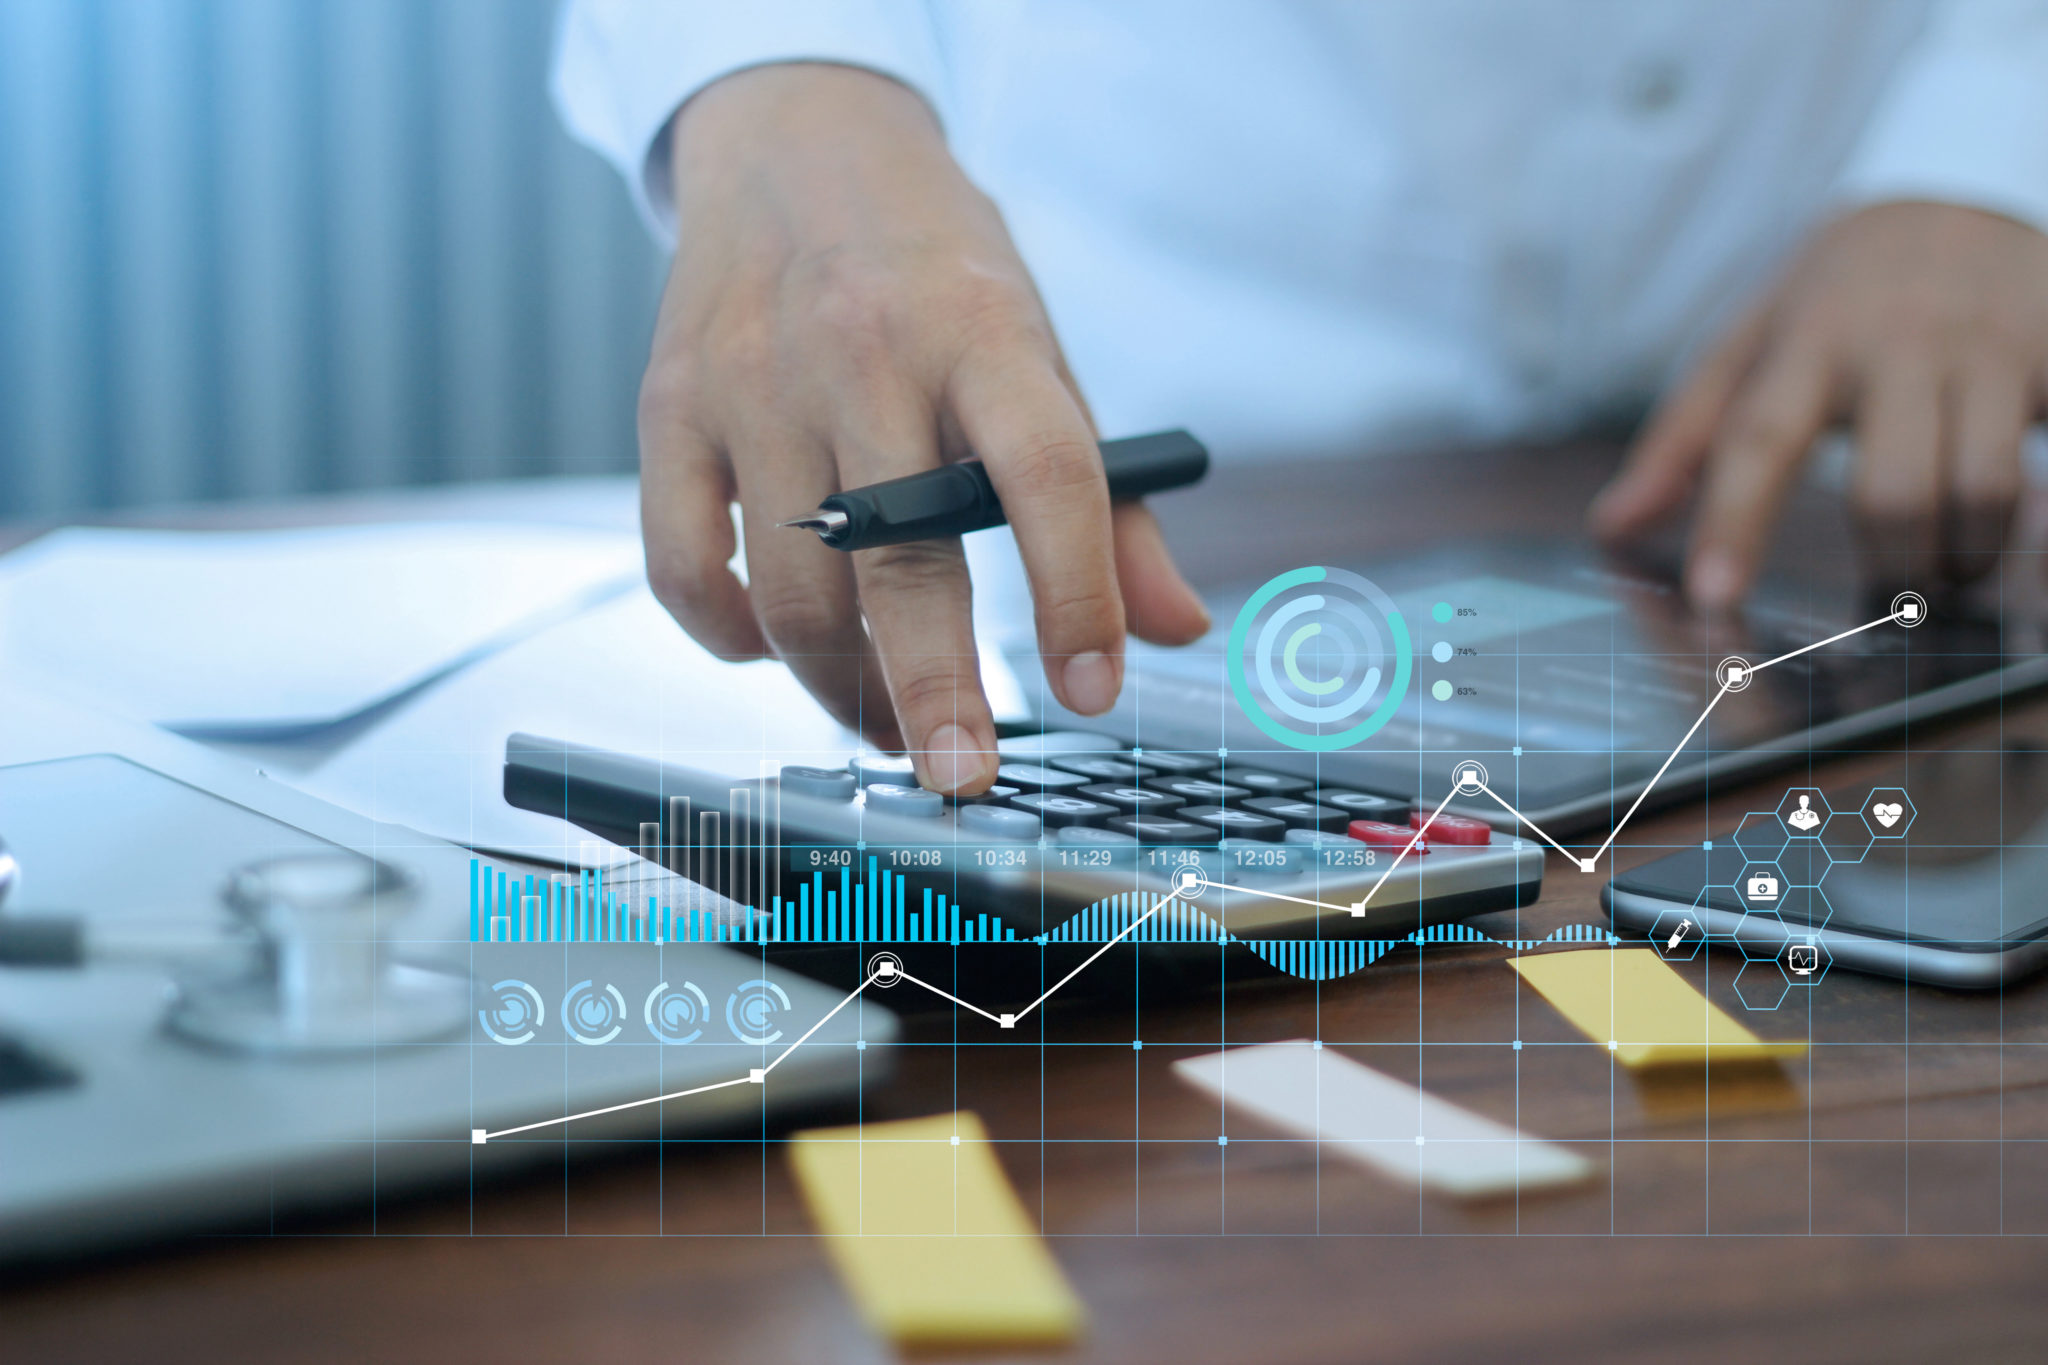 Financial services leaders face important hybrid work questions